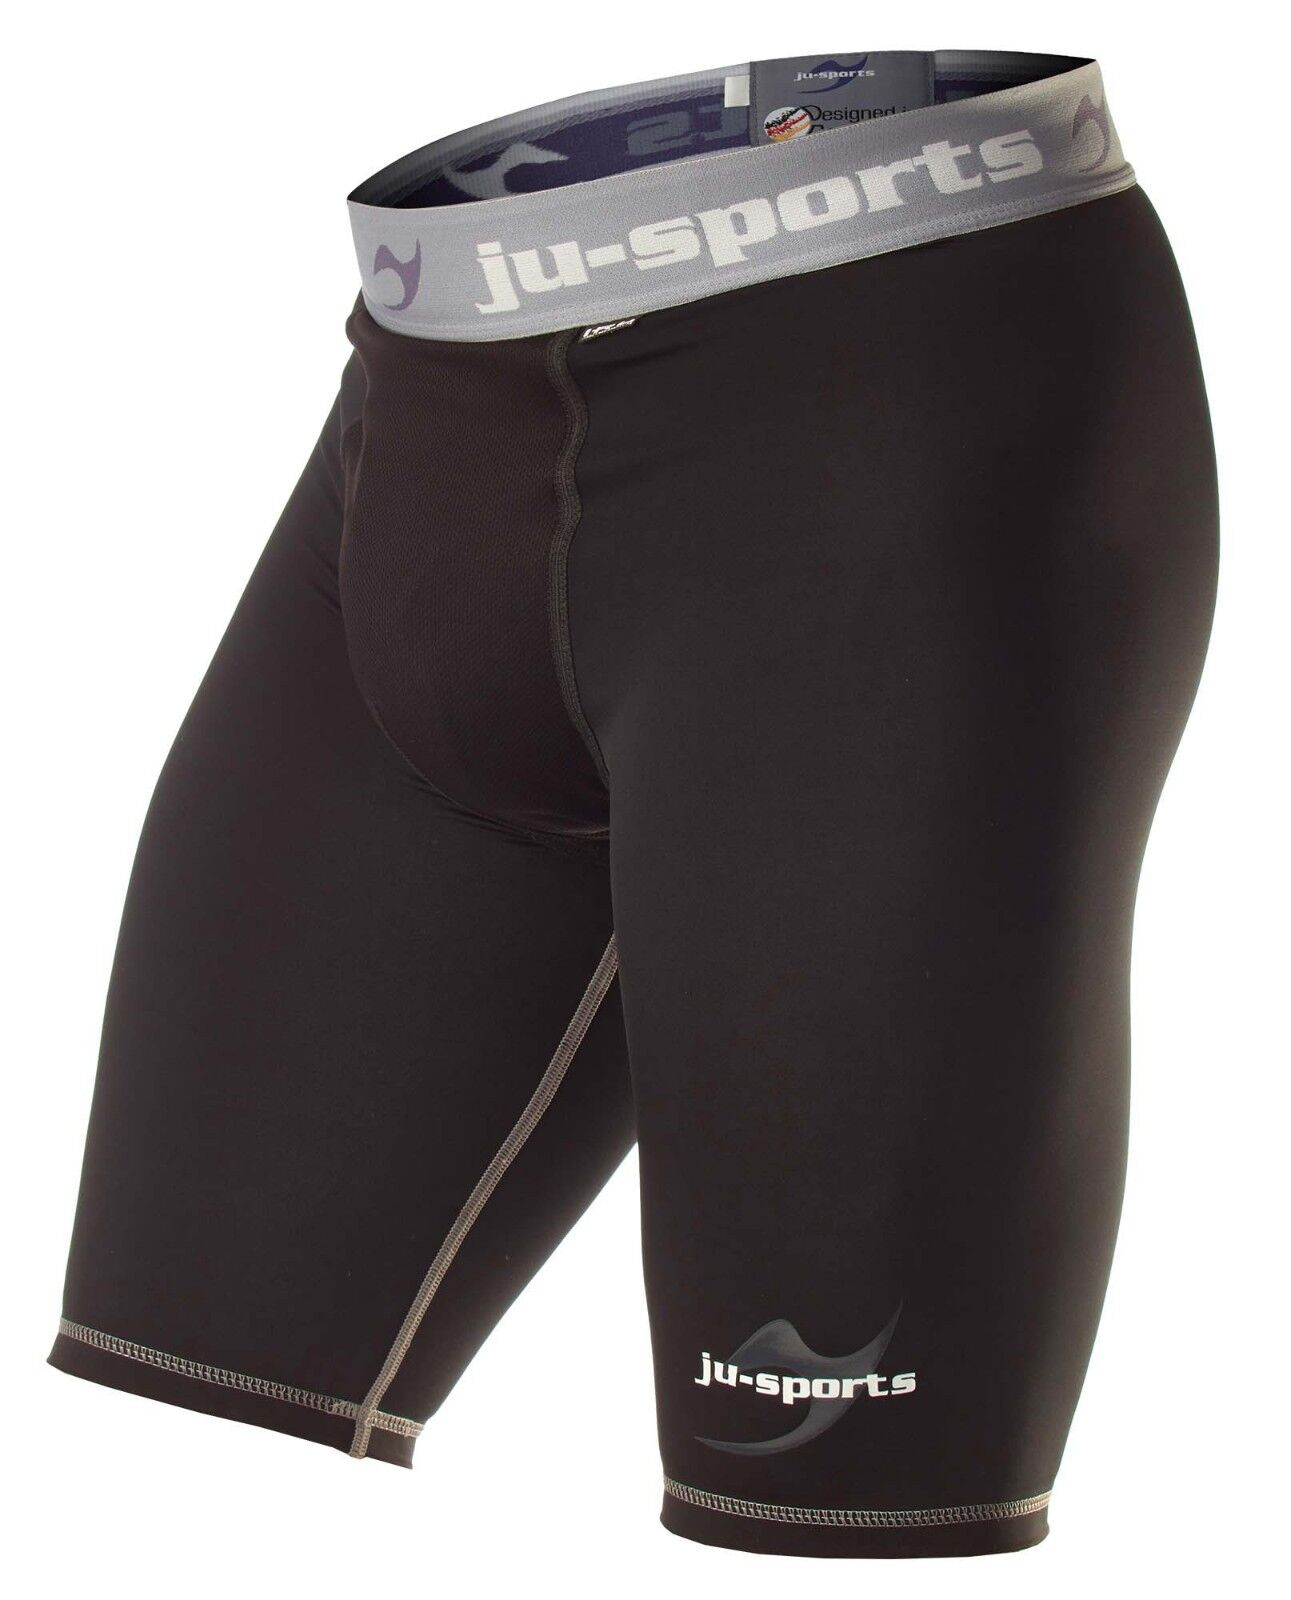 Ju-Sports Compression Base Shorts - Motion Pro Flex - Suspensorium Suspensorium Suspensorium - Tiefschutz db4593